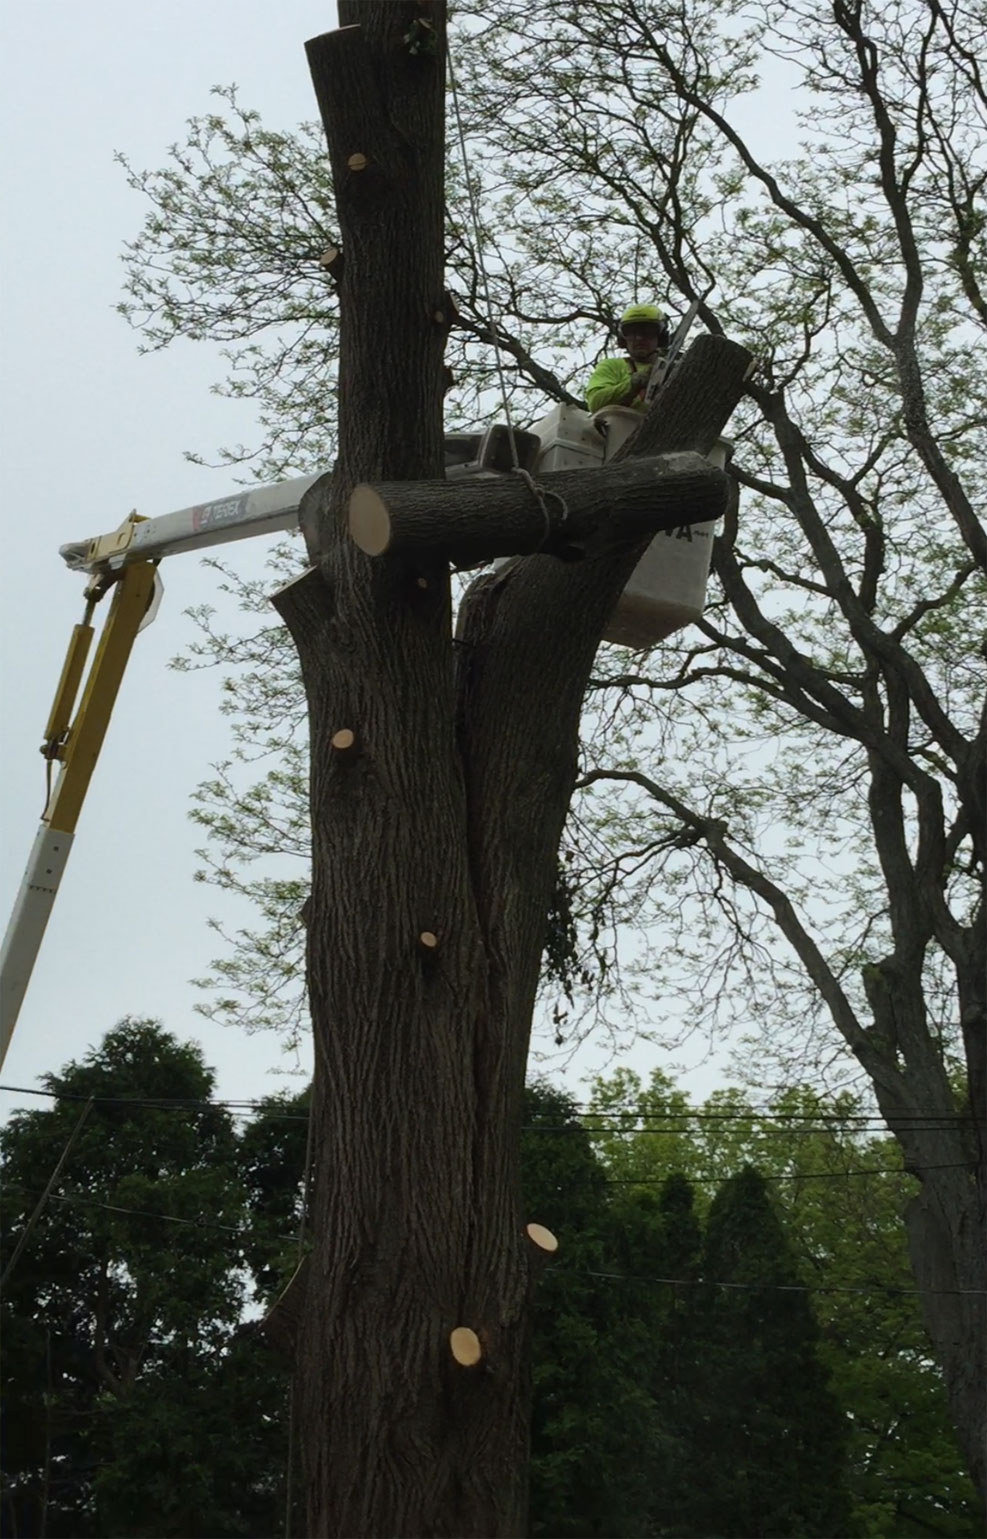 tree-removal-companies-allentown-pa